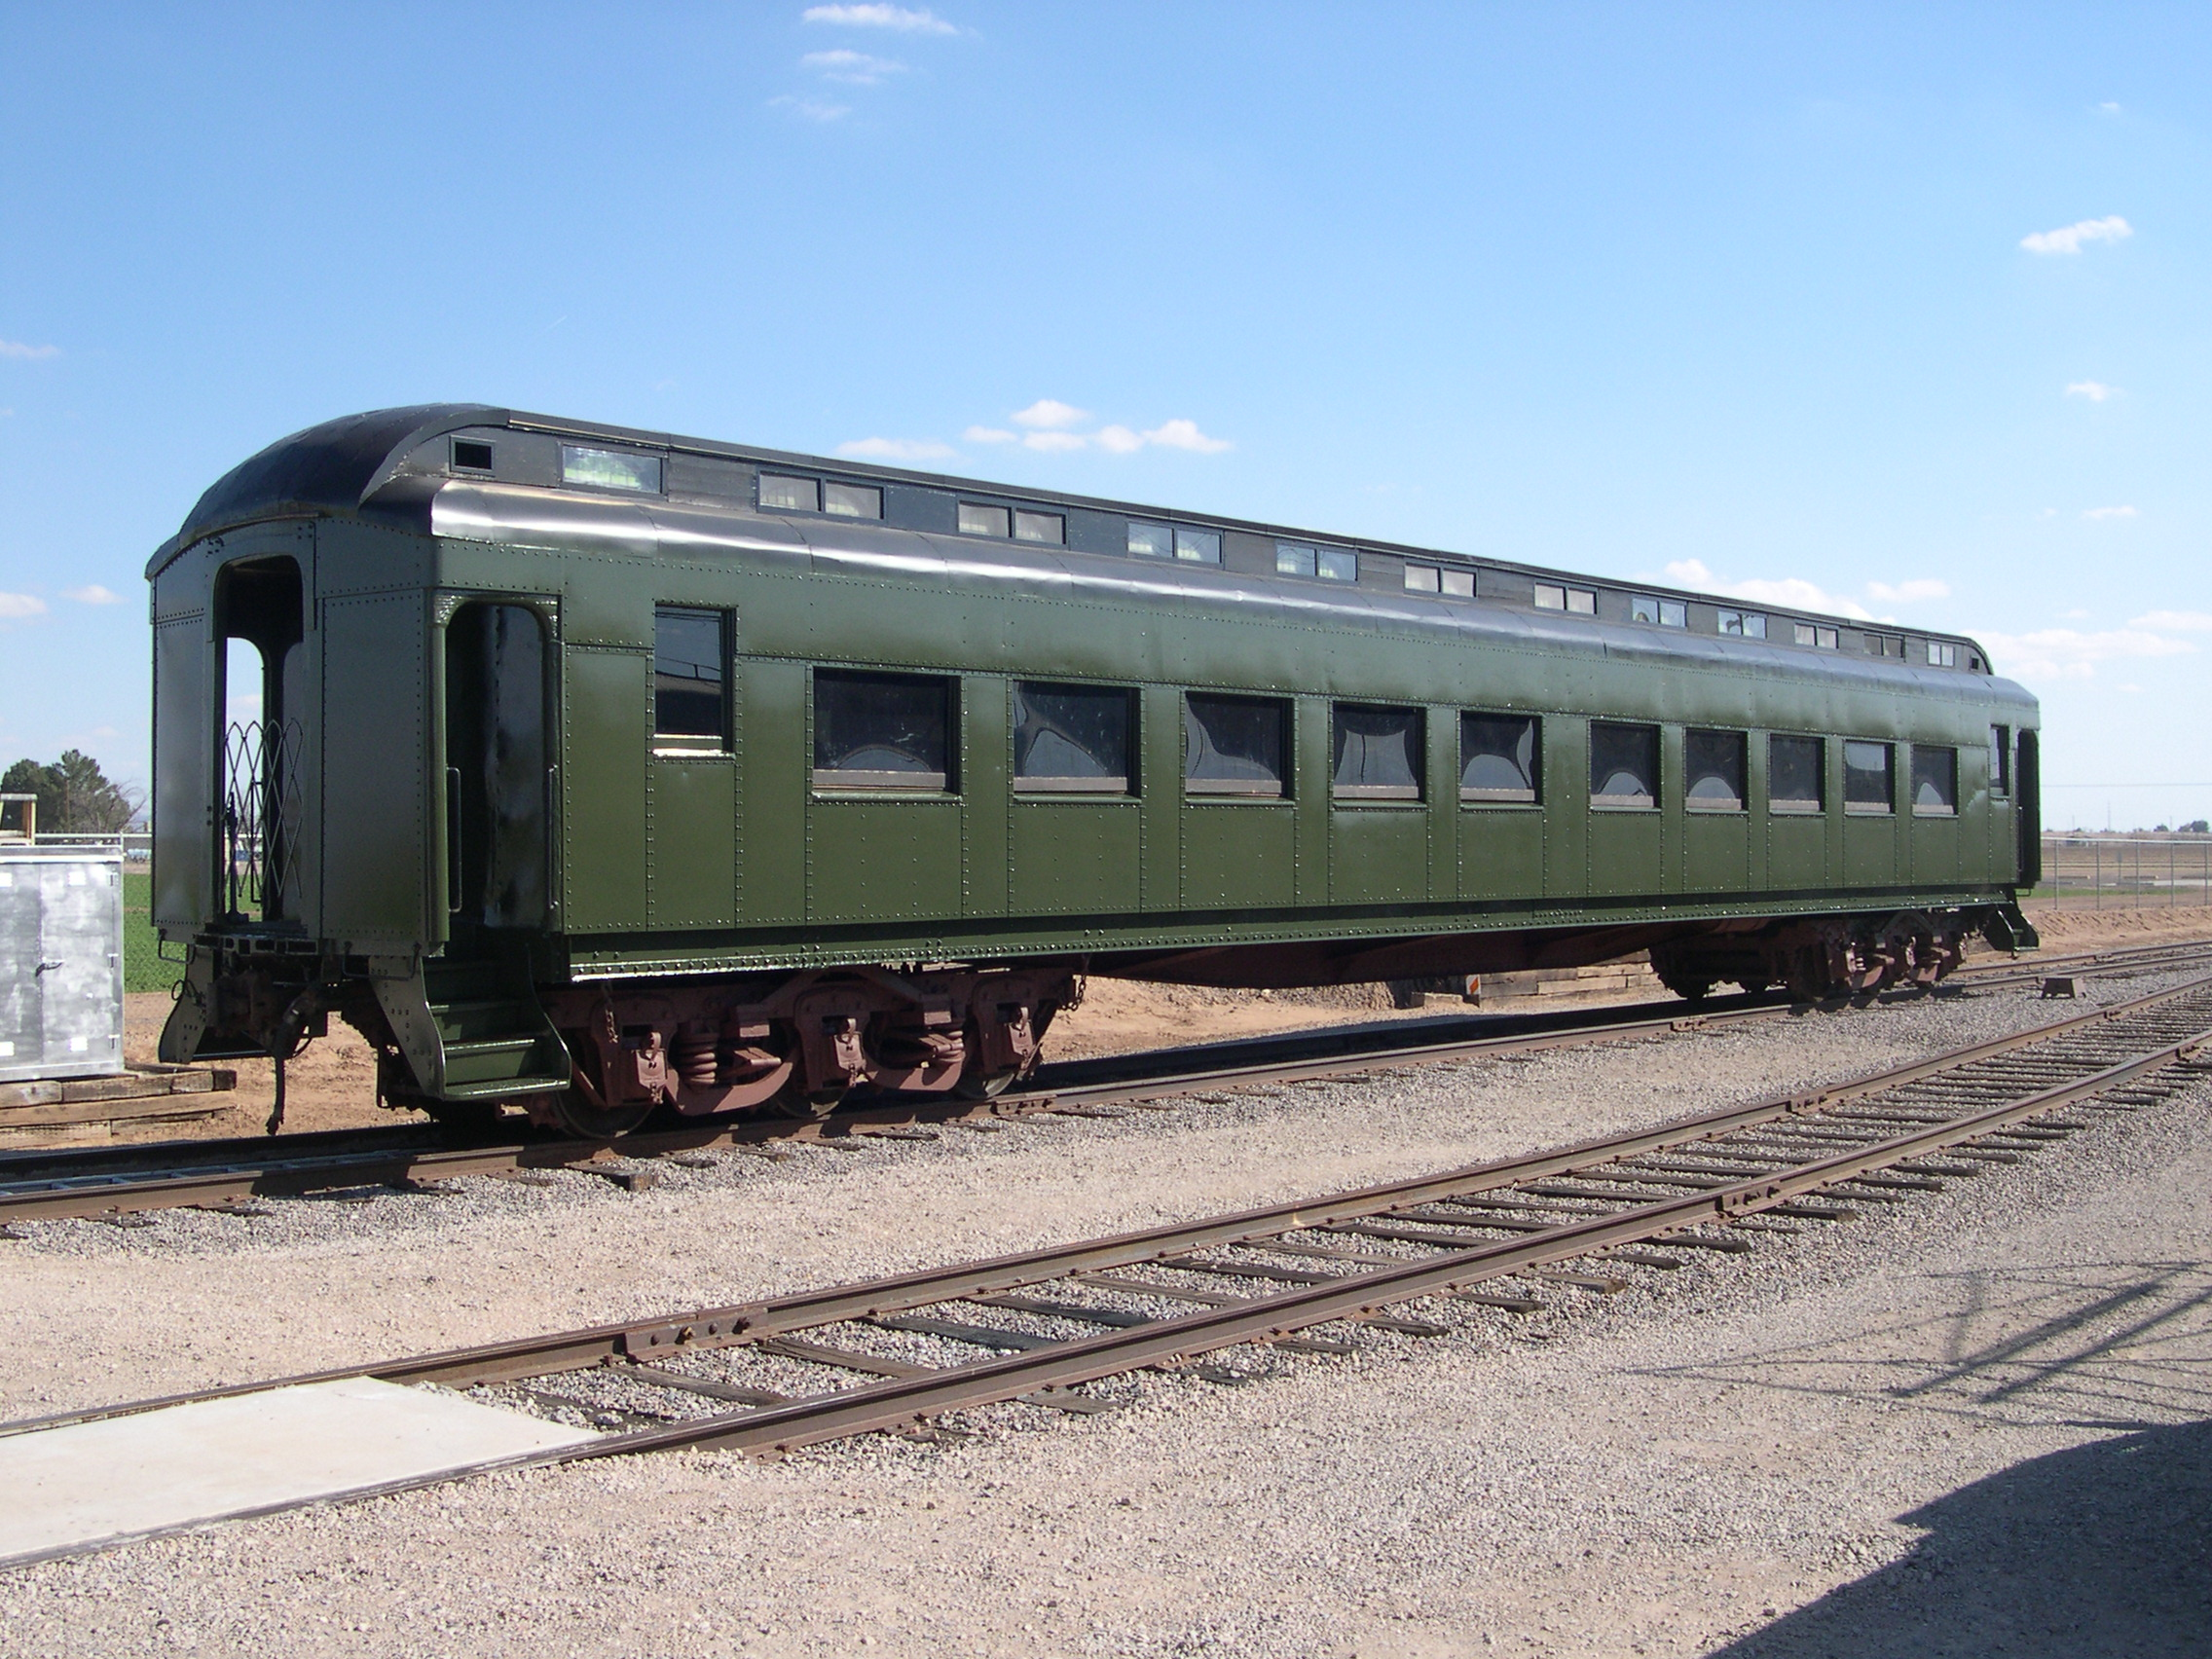 Outside of 1917 Pullman Men's Smoking Car